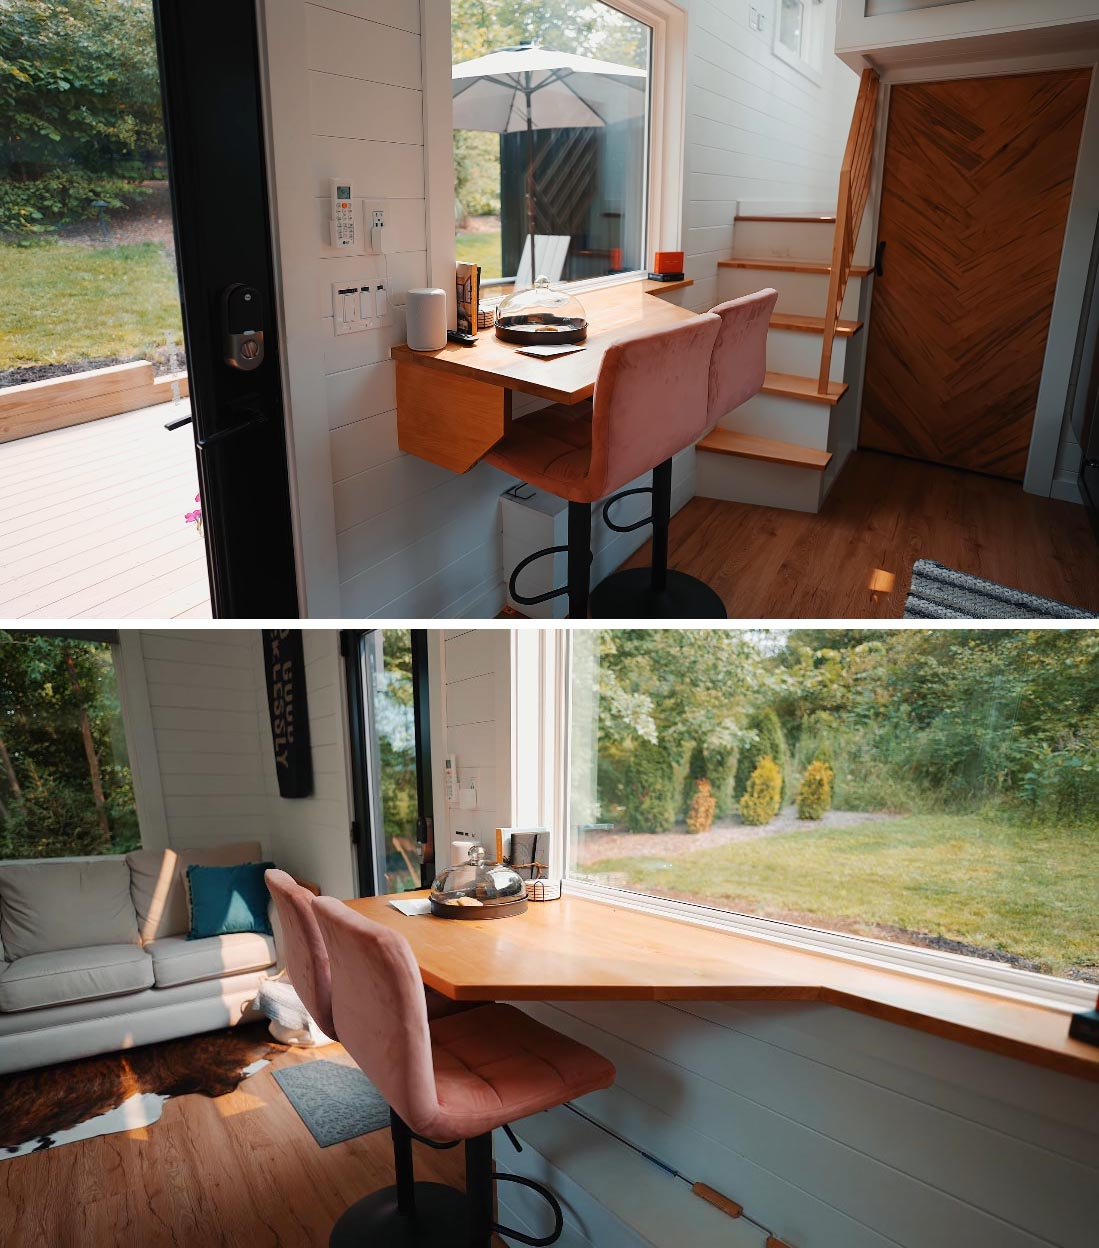 The dining area of this Scandinavian-inspired tiny home also doubles as a desk.